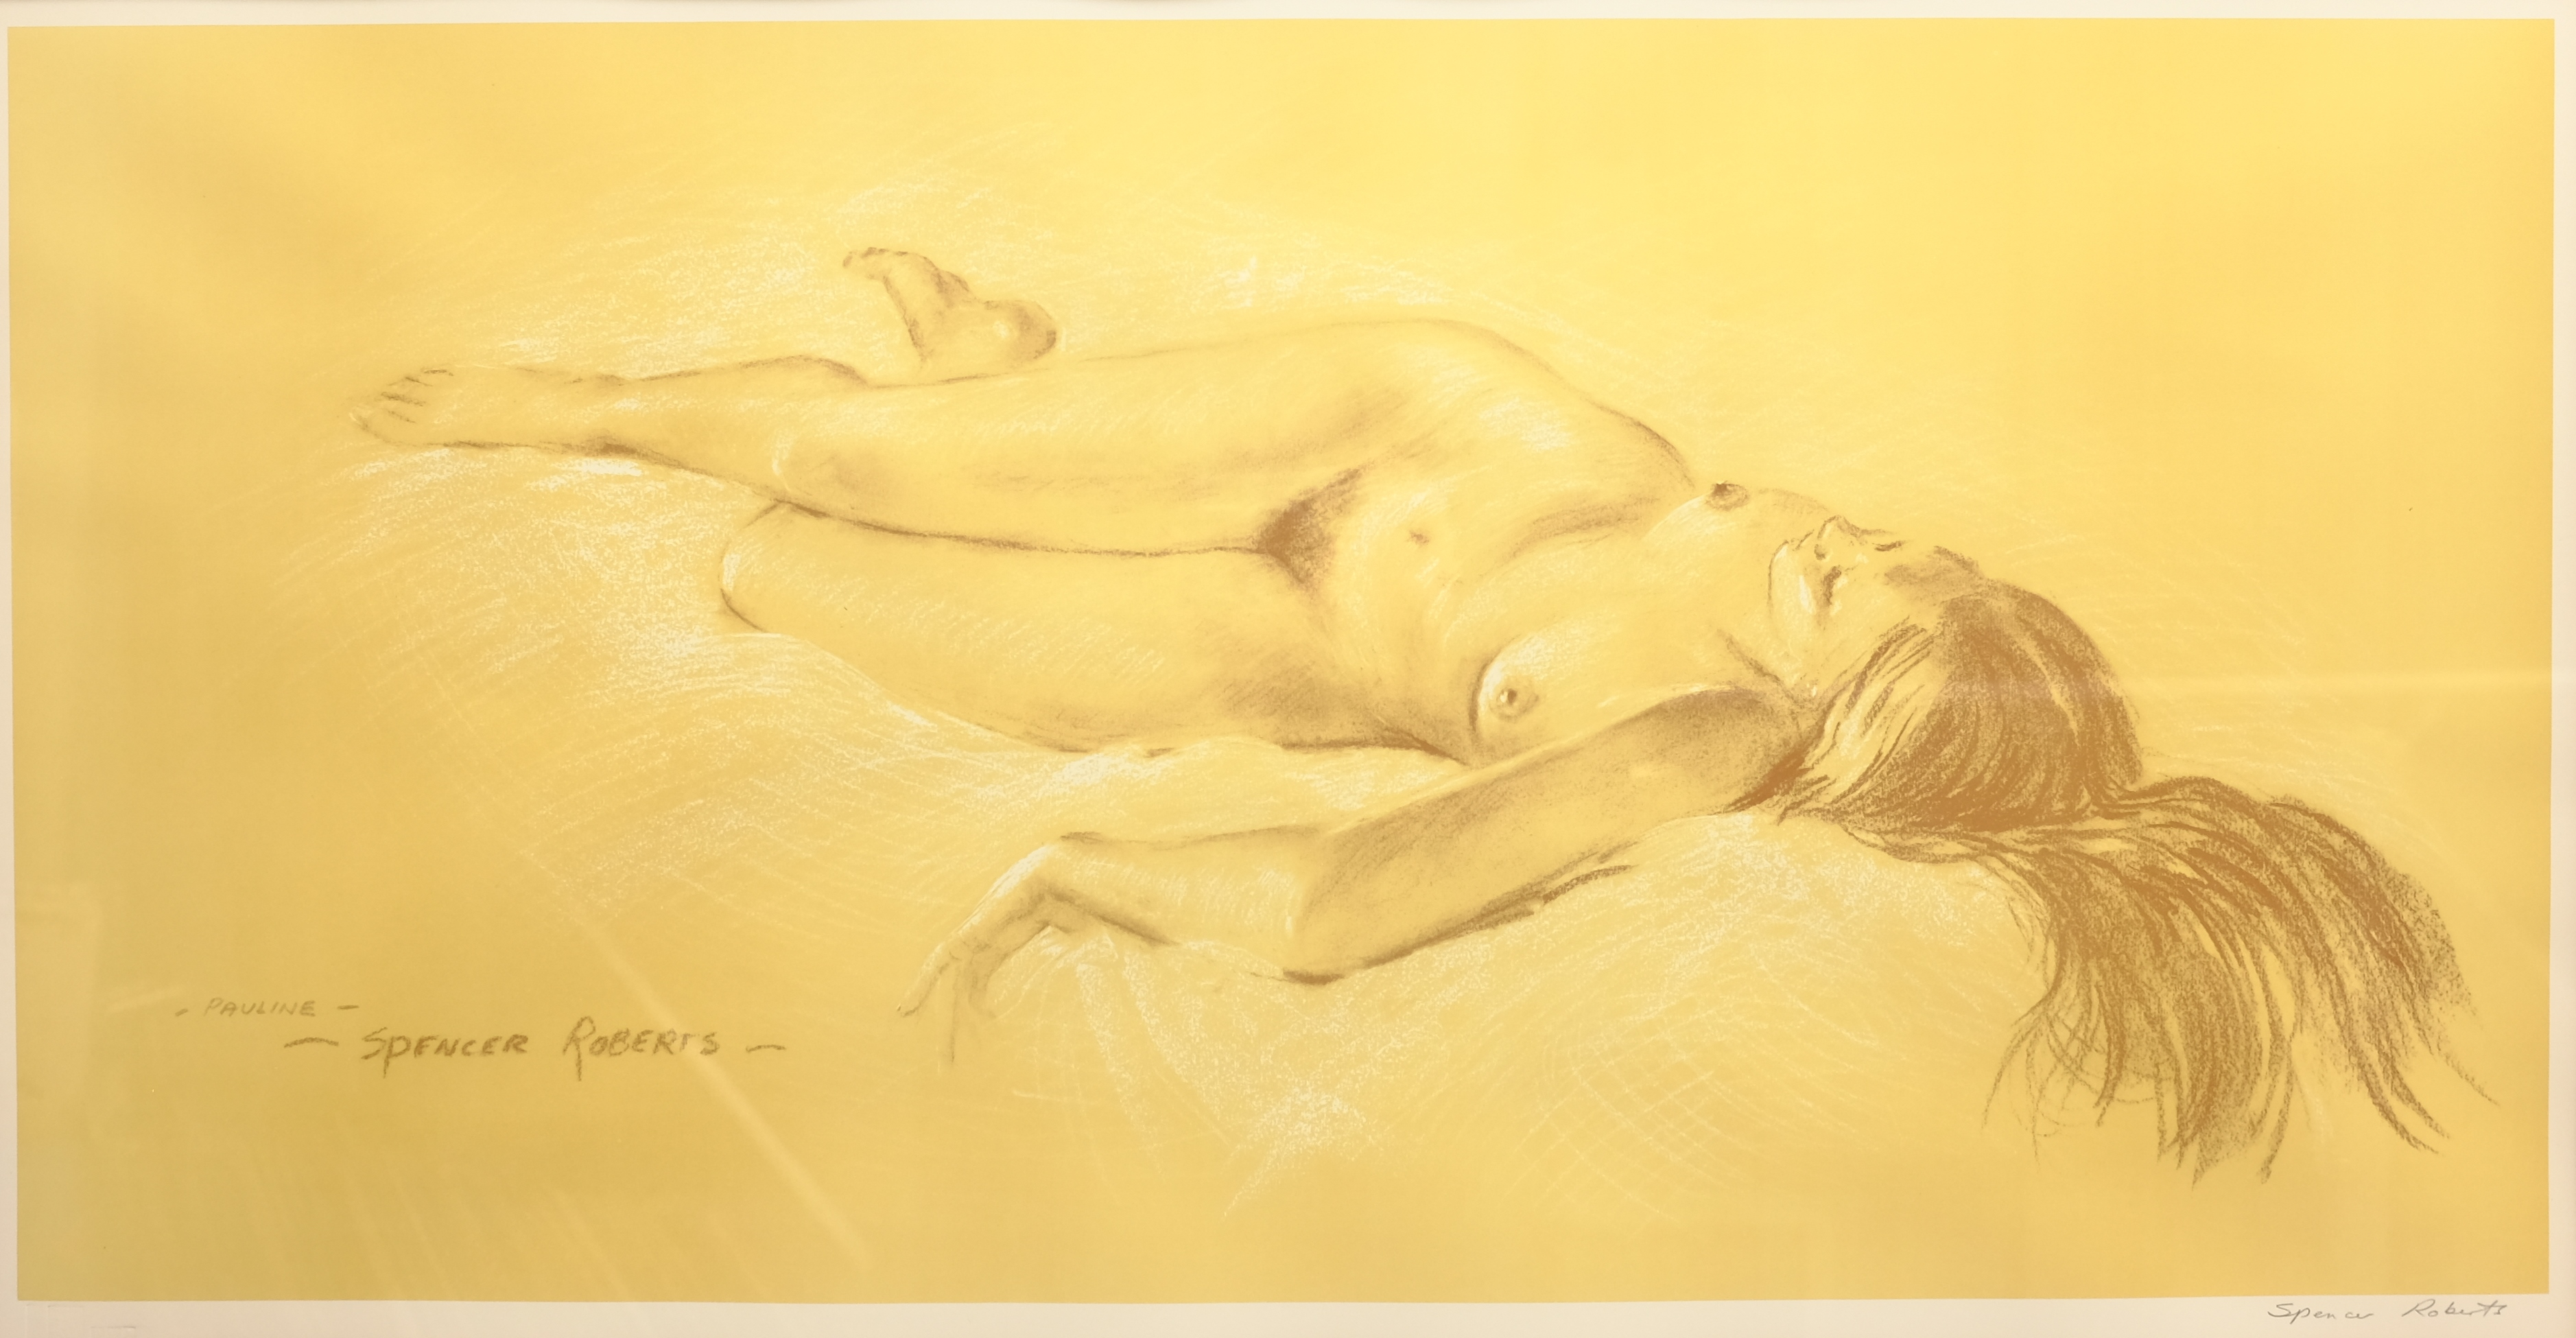 Arthur Spencer Roberts (British 1920-1997): 'Pauline', limited edition print signed in pencil with F